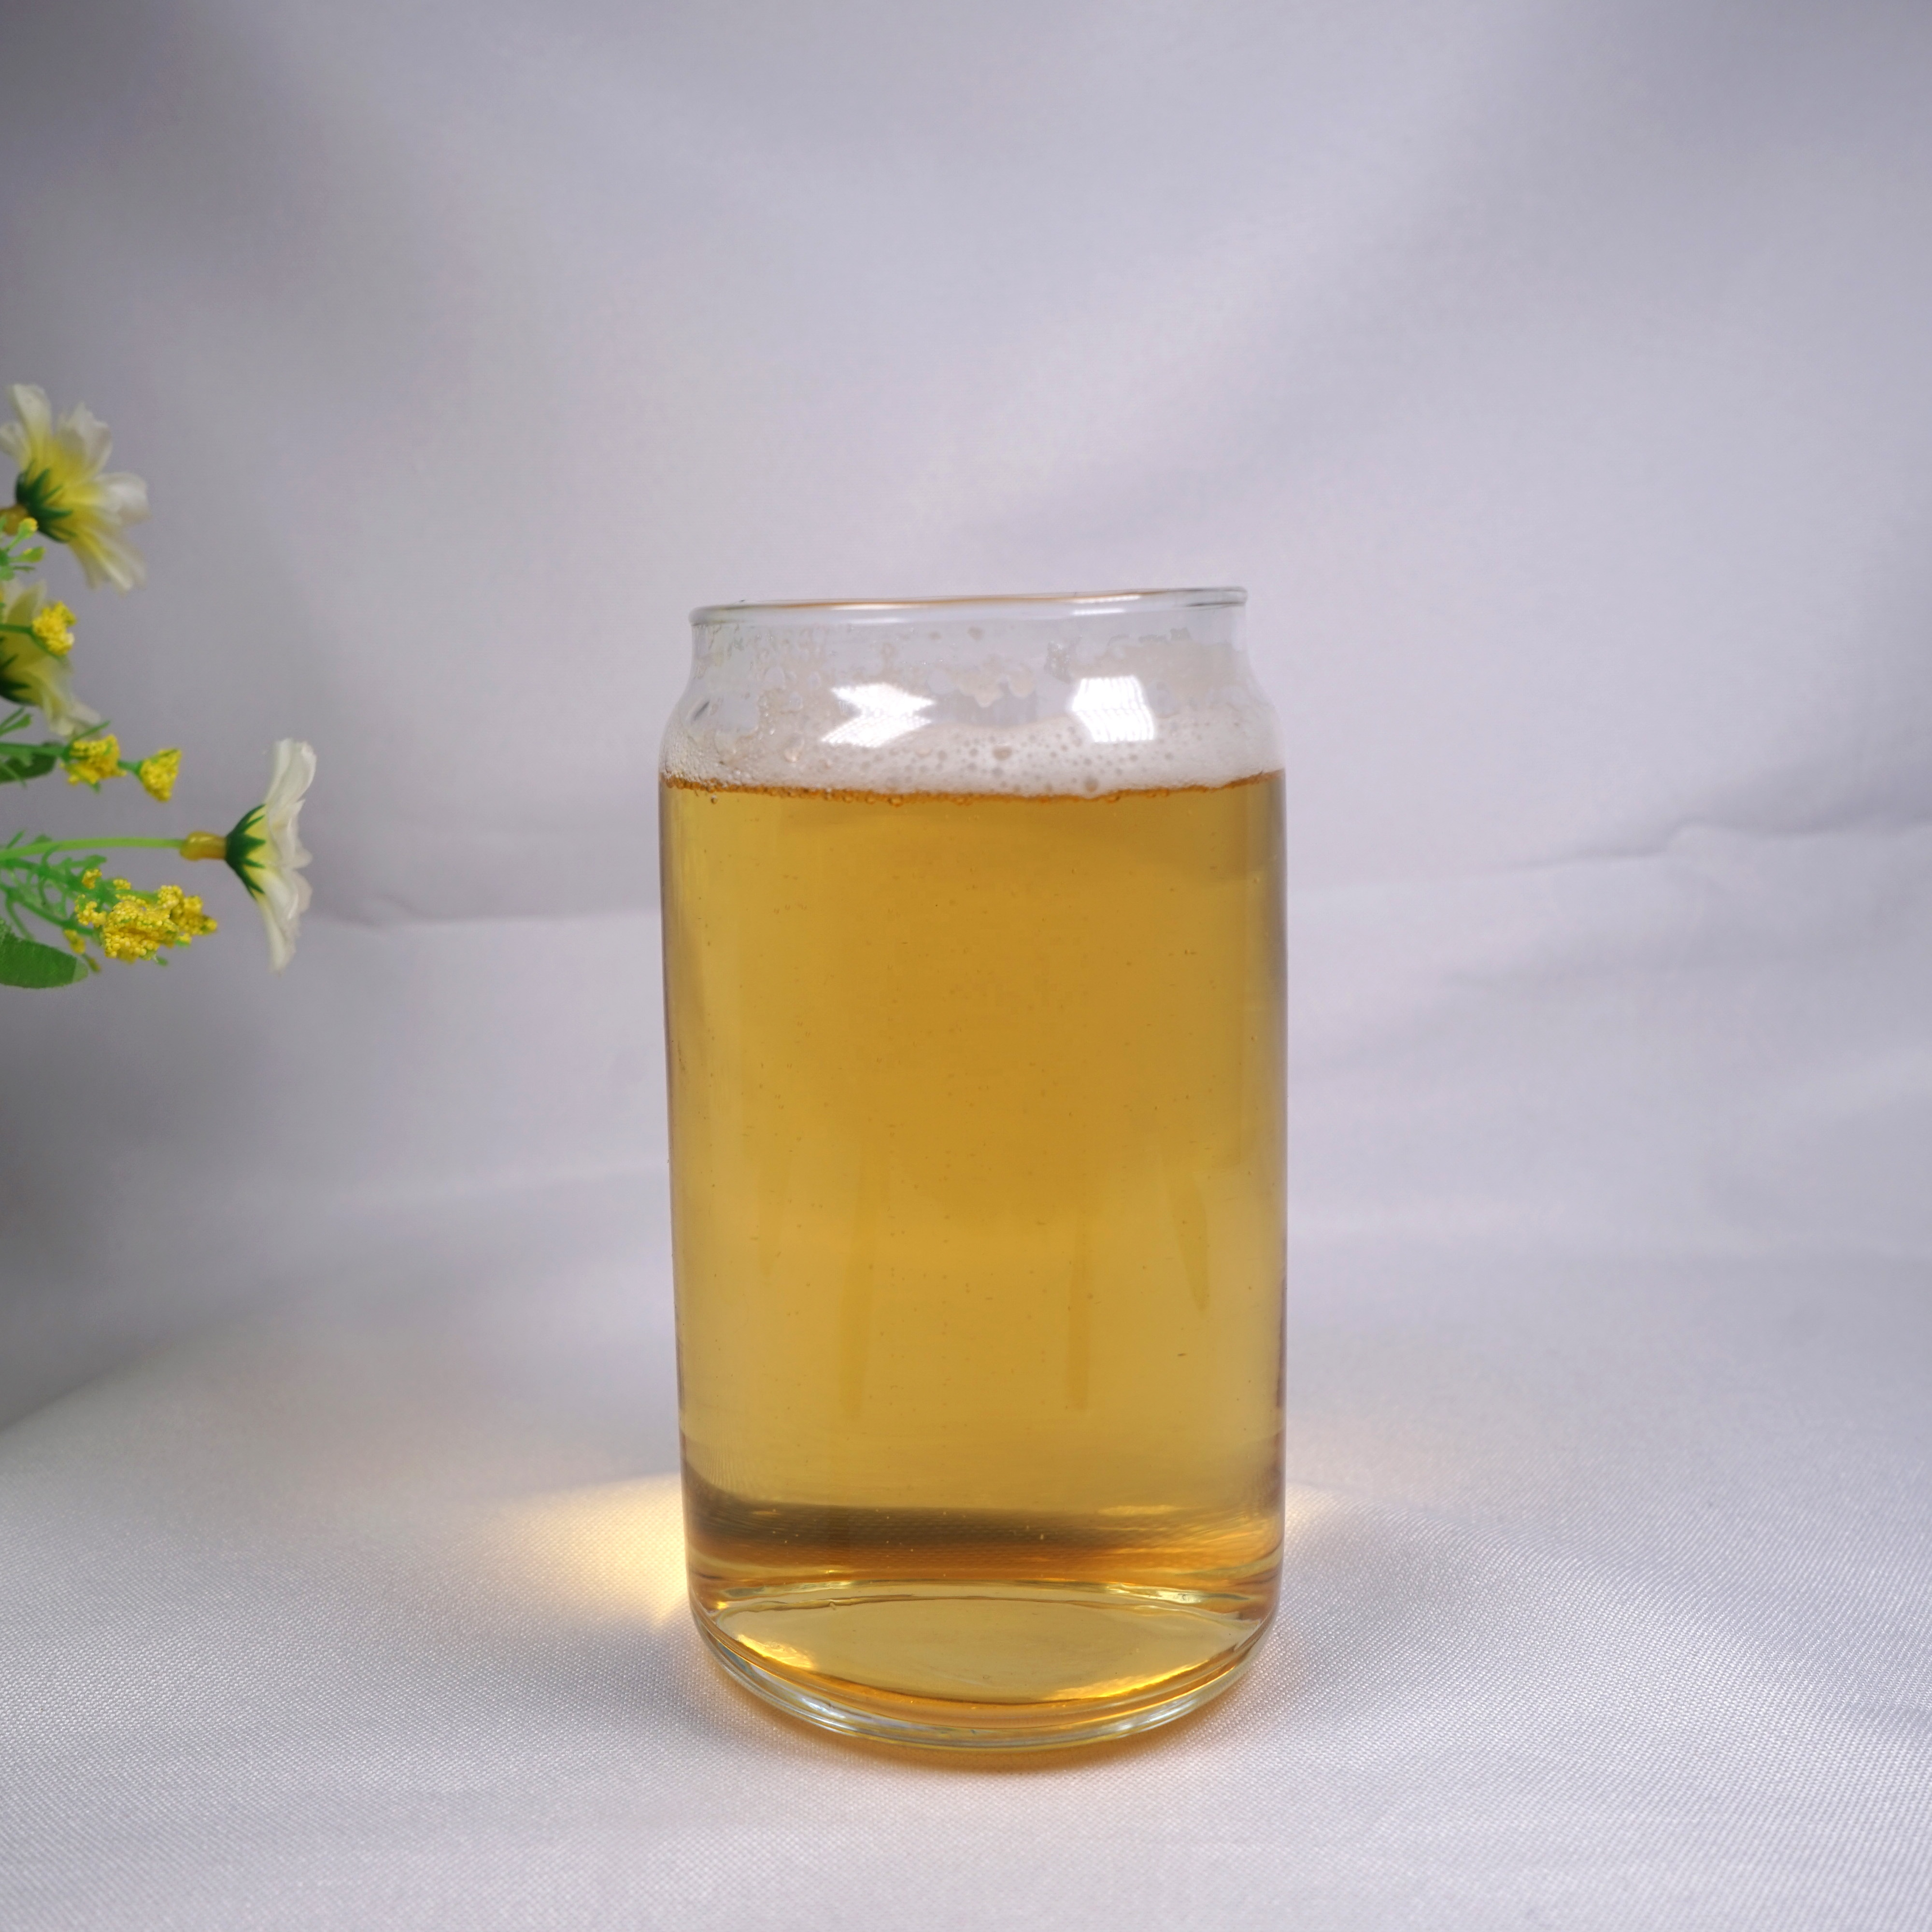 Factory Wholesale 16 Oz Can Shape Beer Glass Cheap Price - Buy Can Shape  Beer Glass,16 Oz Can Shape Beer Glass,16oz Beer Can Glass Product on